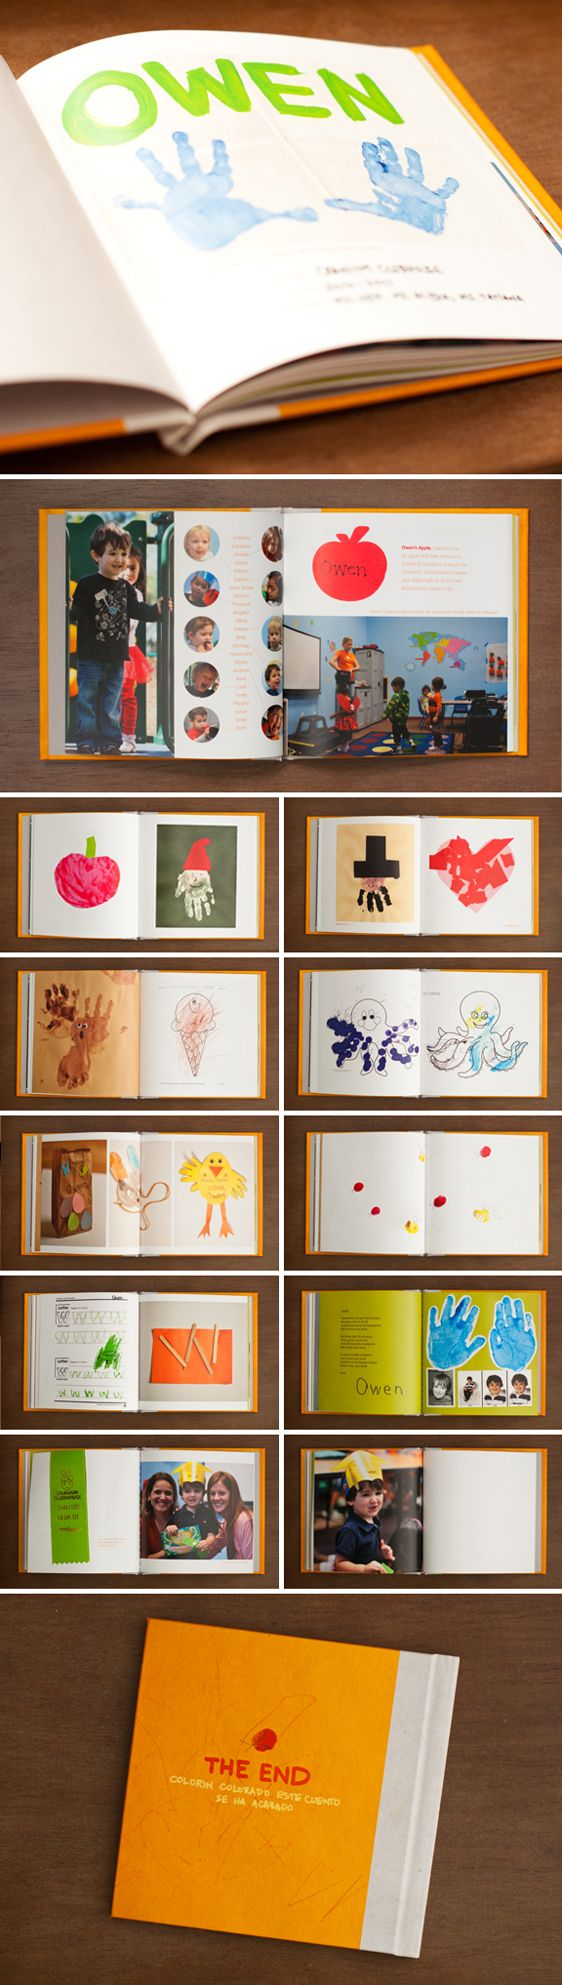 Scan or take photos of art work and writings — Book of School Projects. Love love love this idea!